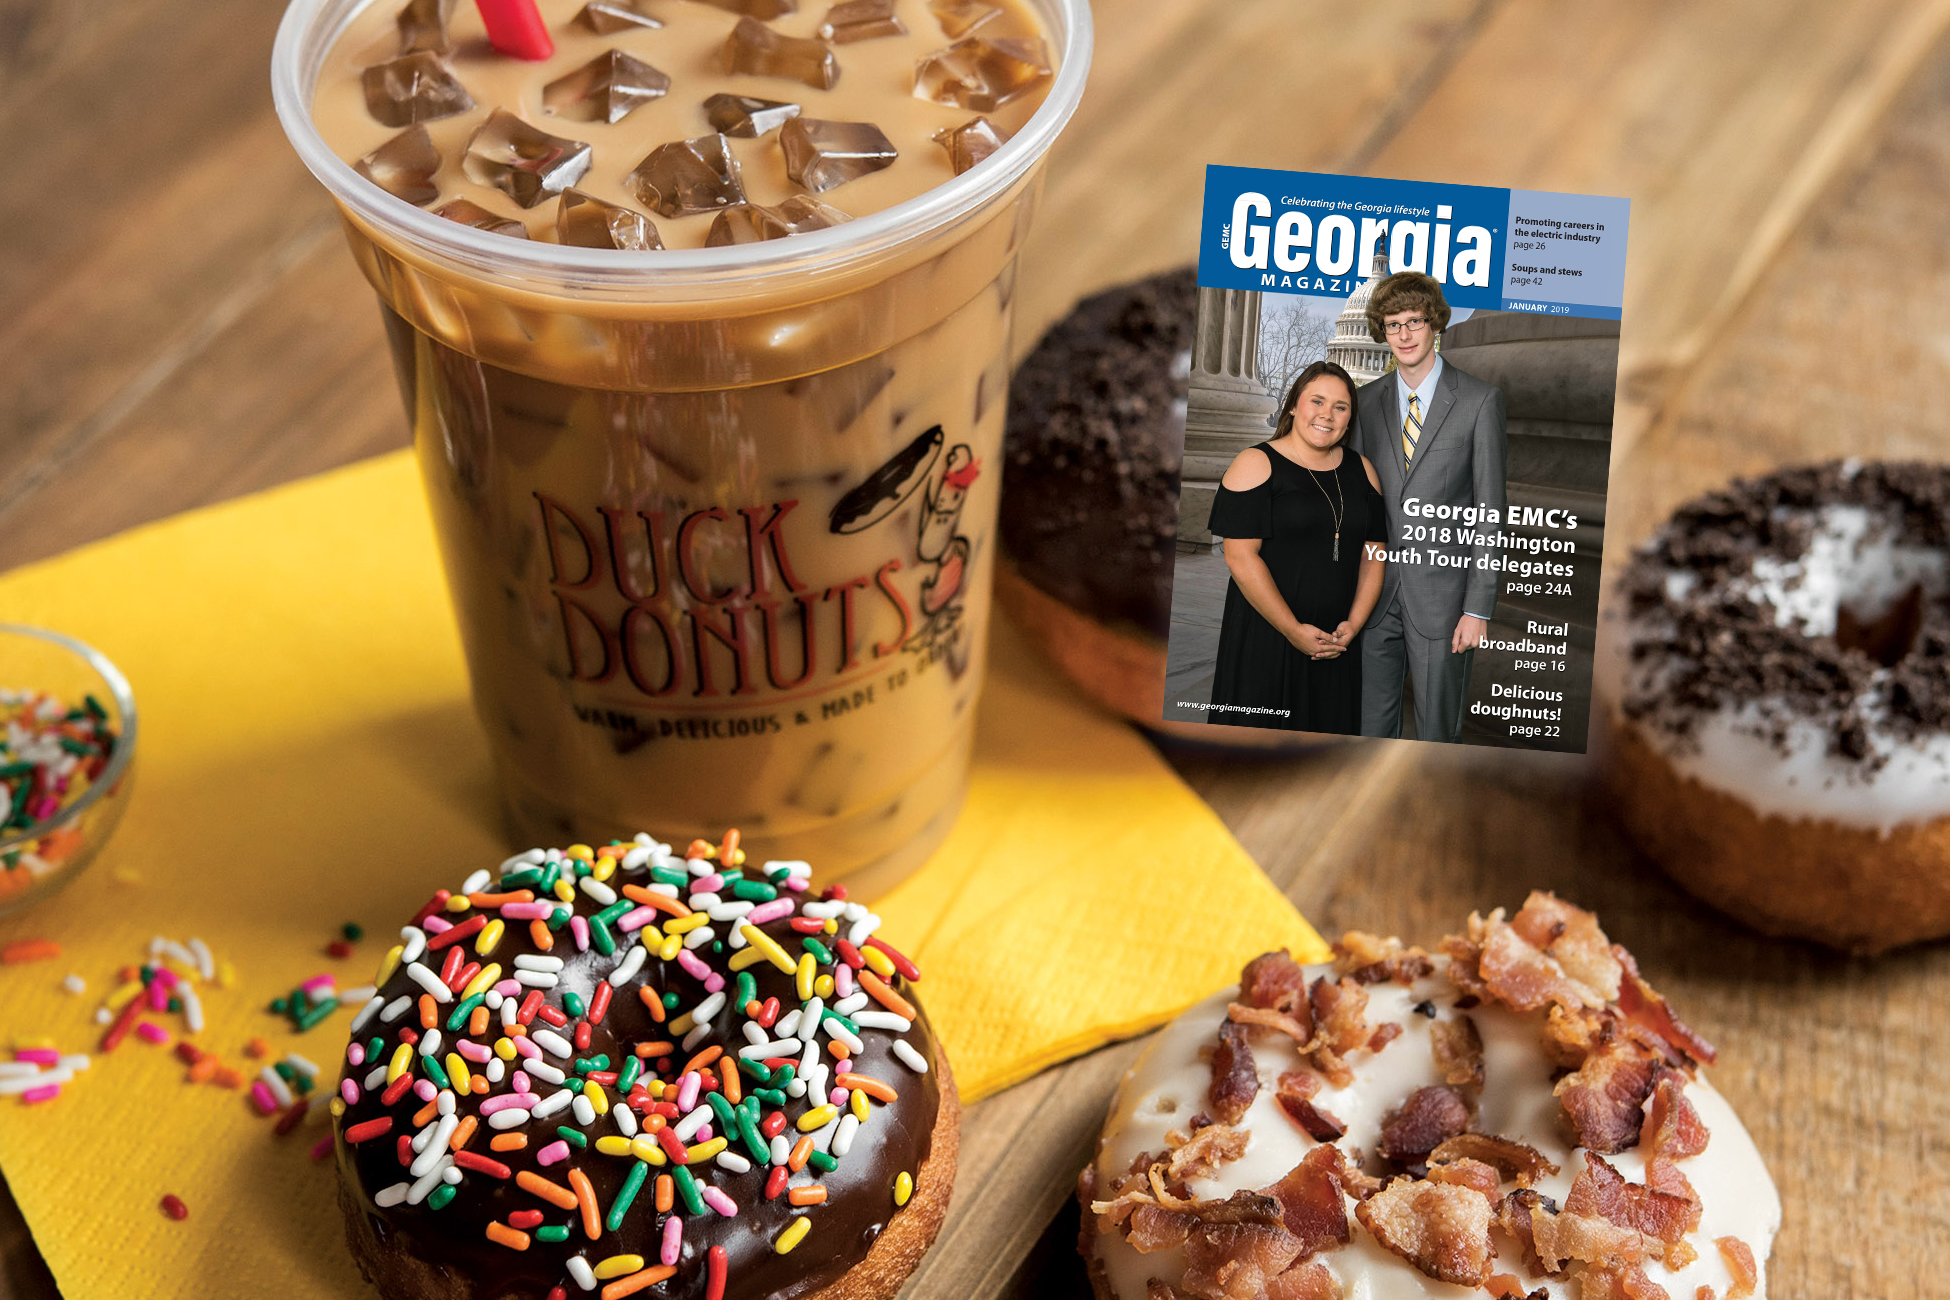 Check out January's Georgia Magazine